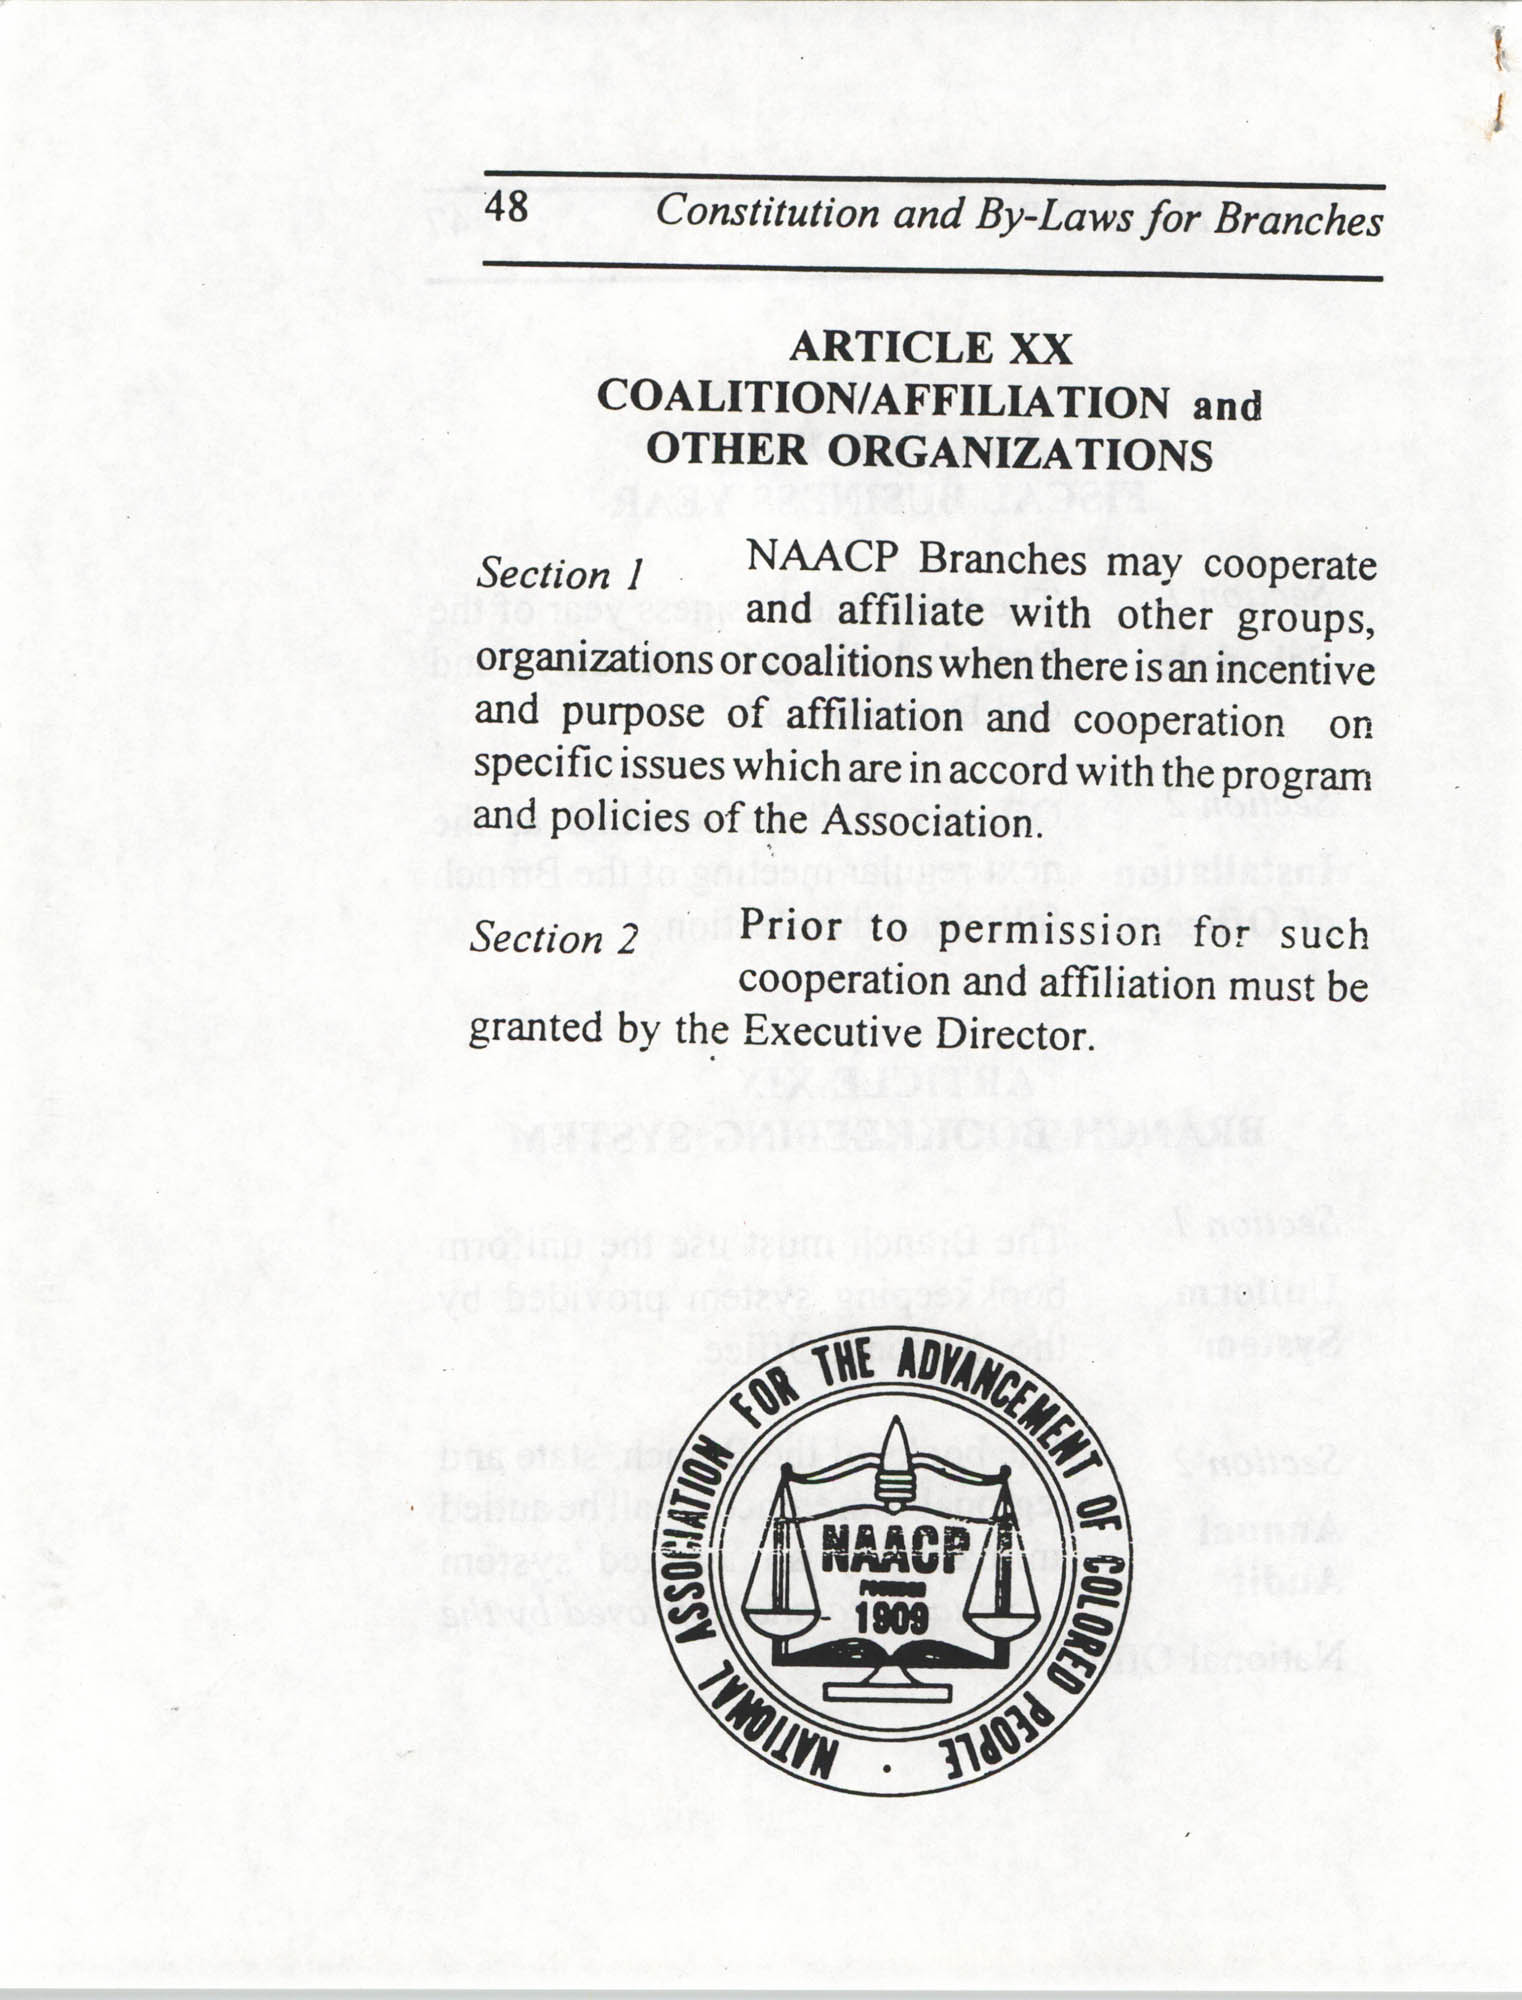 Constitution and By-Laws for Branches of the NAACP, July 1994, Page 48